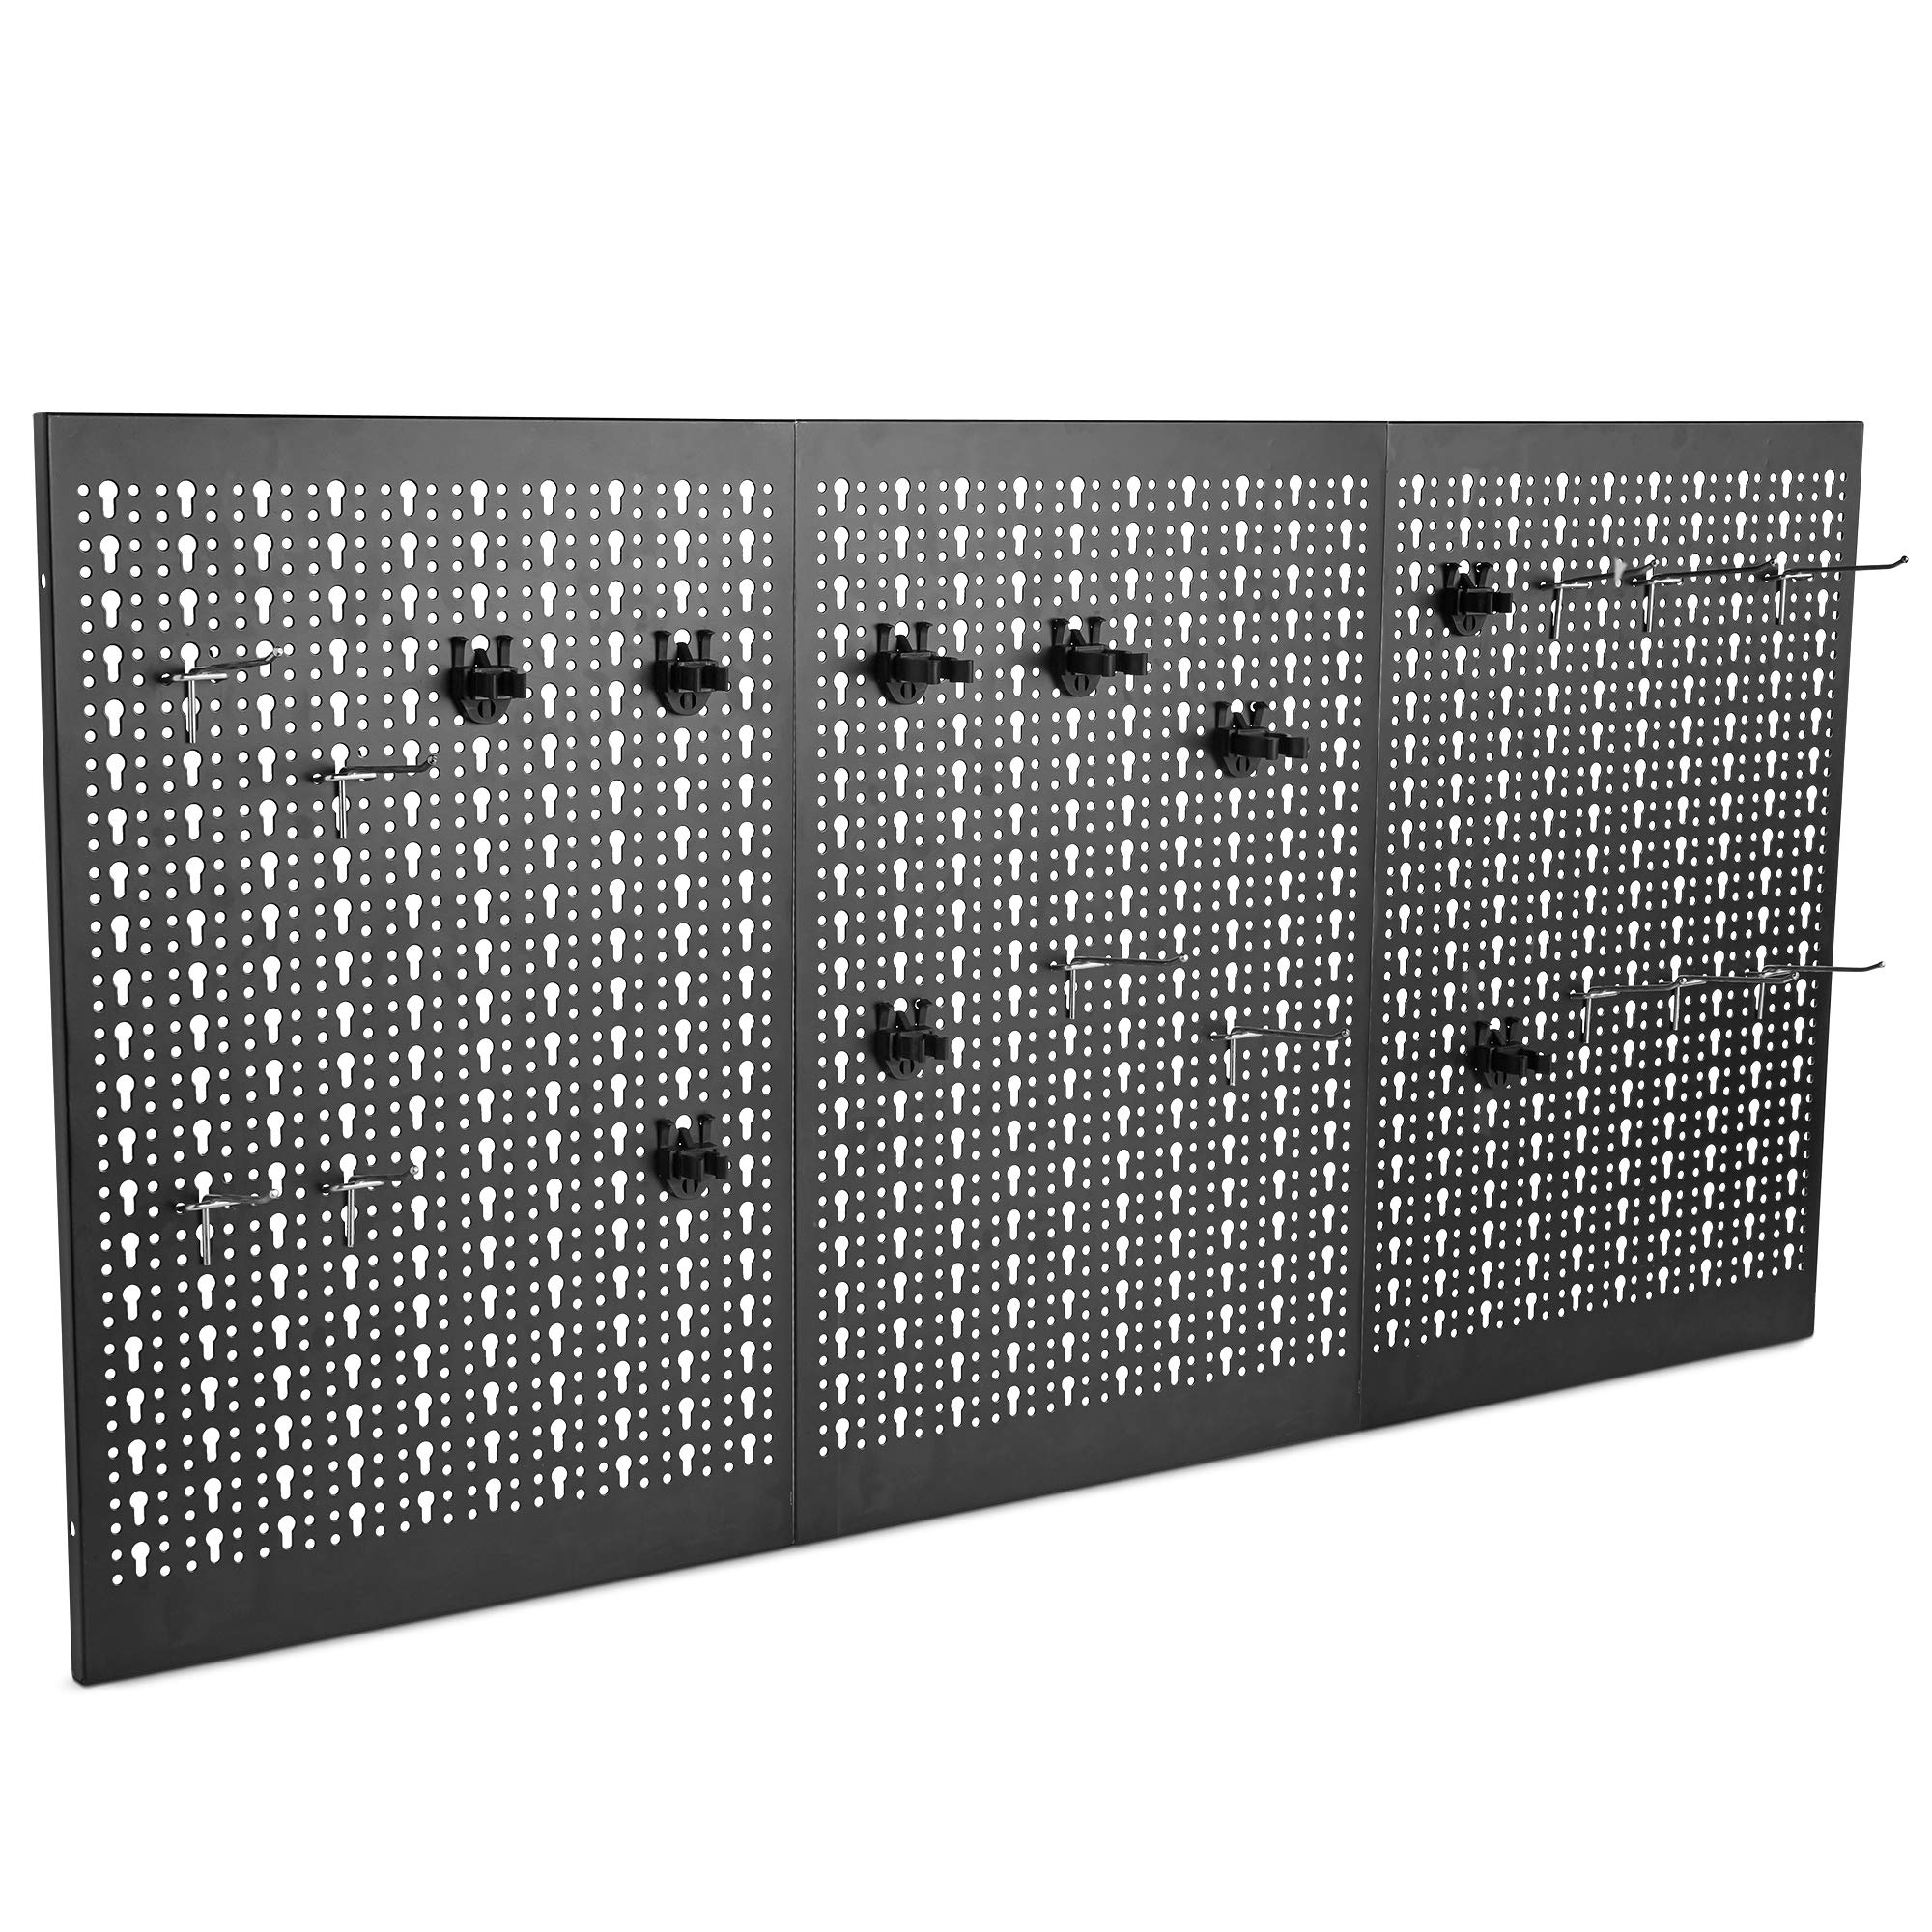 VonHaus 24 Piece Wall Mounted Metal Pegboard Panel, Hook Set - Tool Organizer Garage Storage System with 3X Black Steel Panels and 21 Hook Accessories (Mounting Hardware is Not Included)